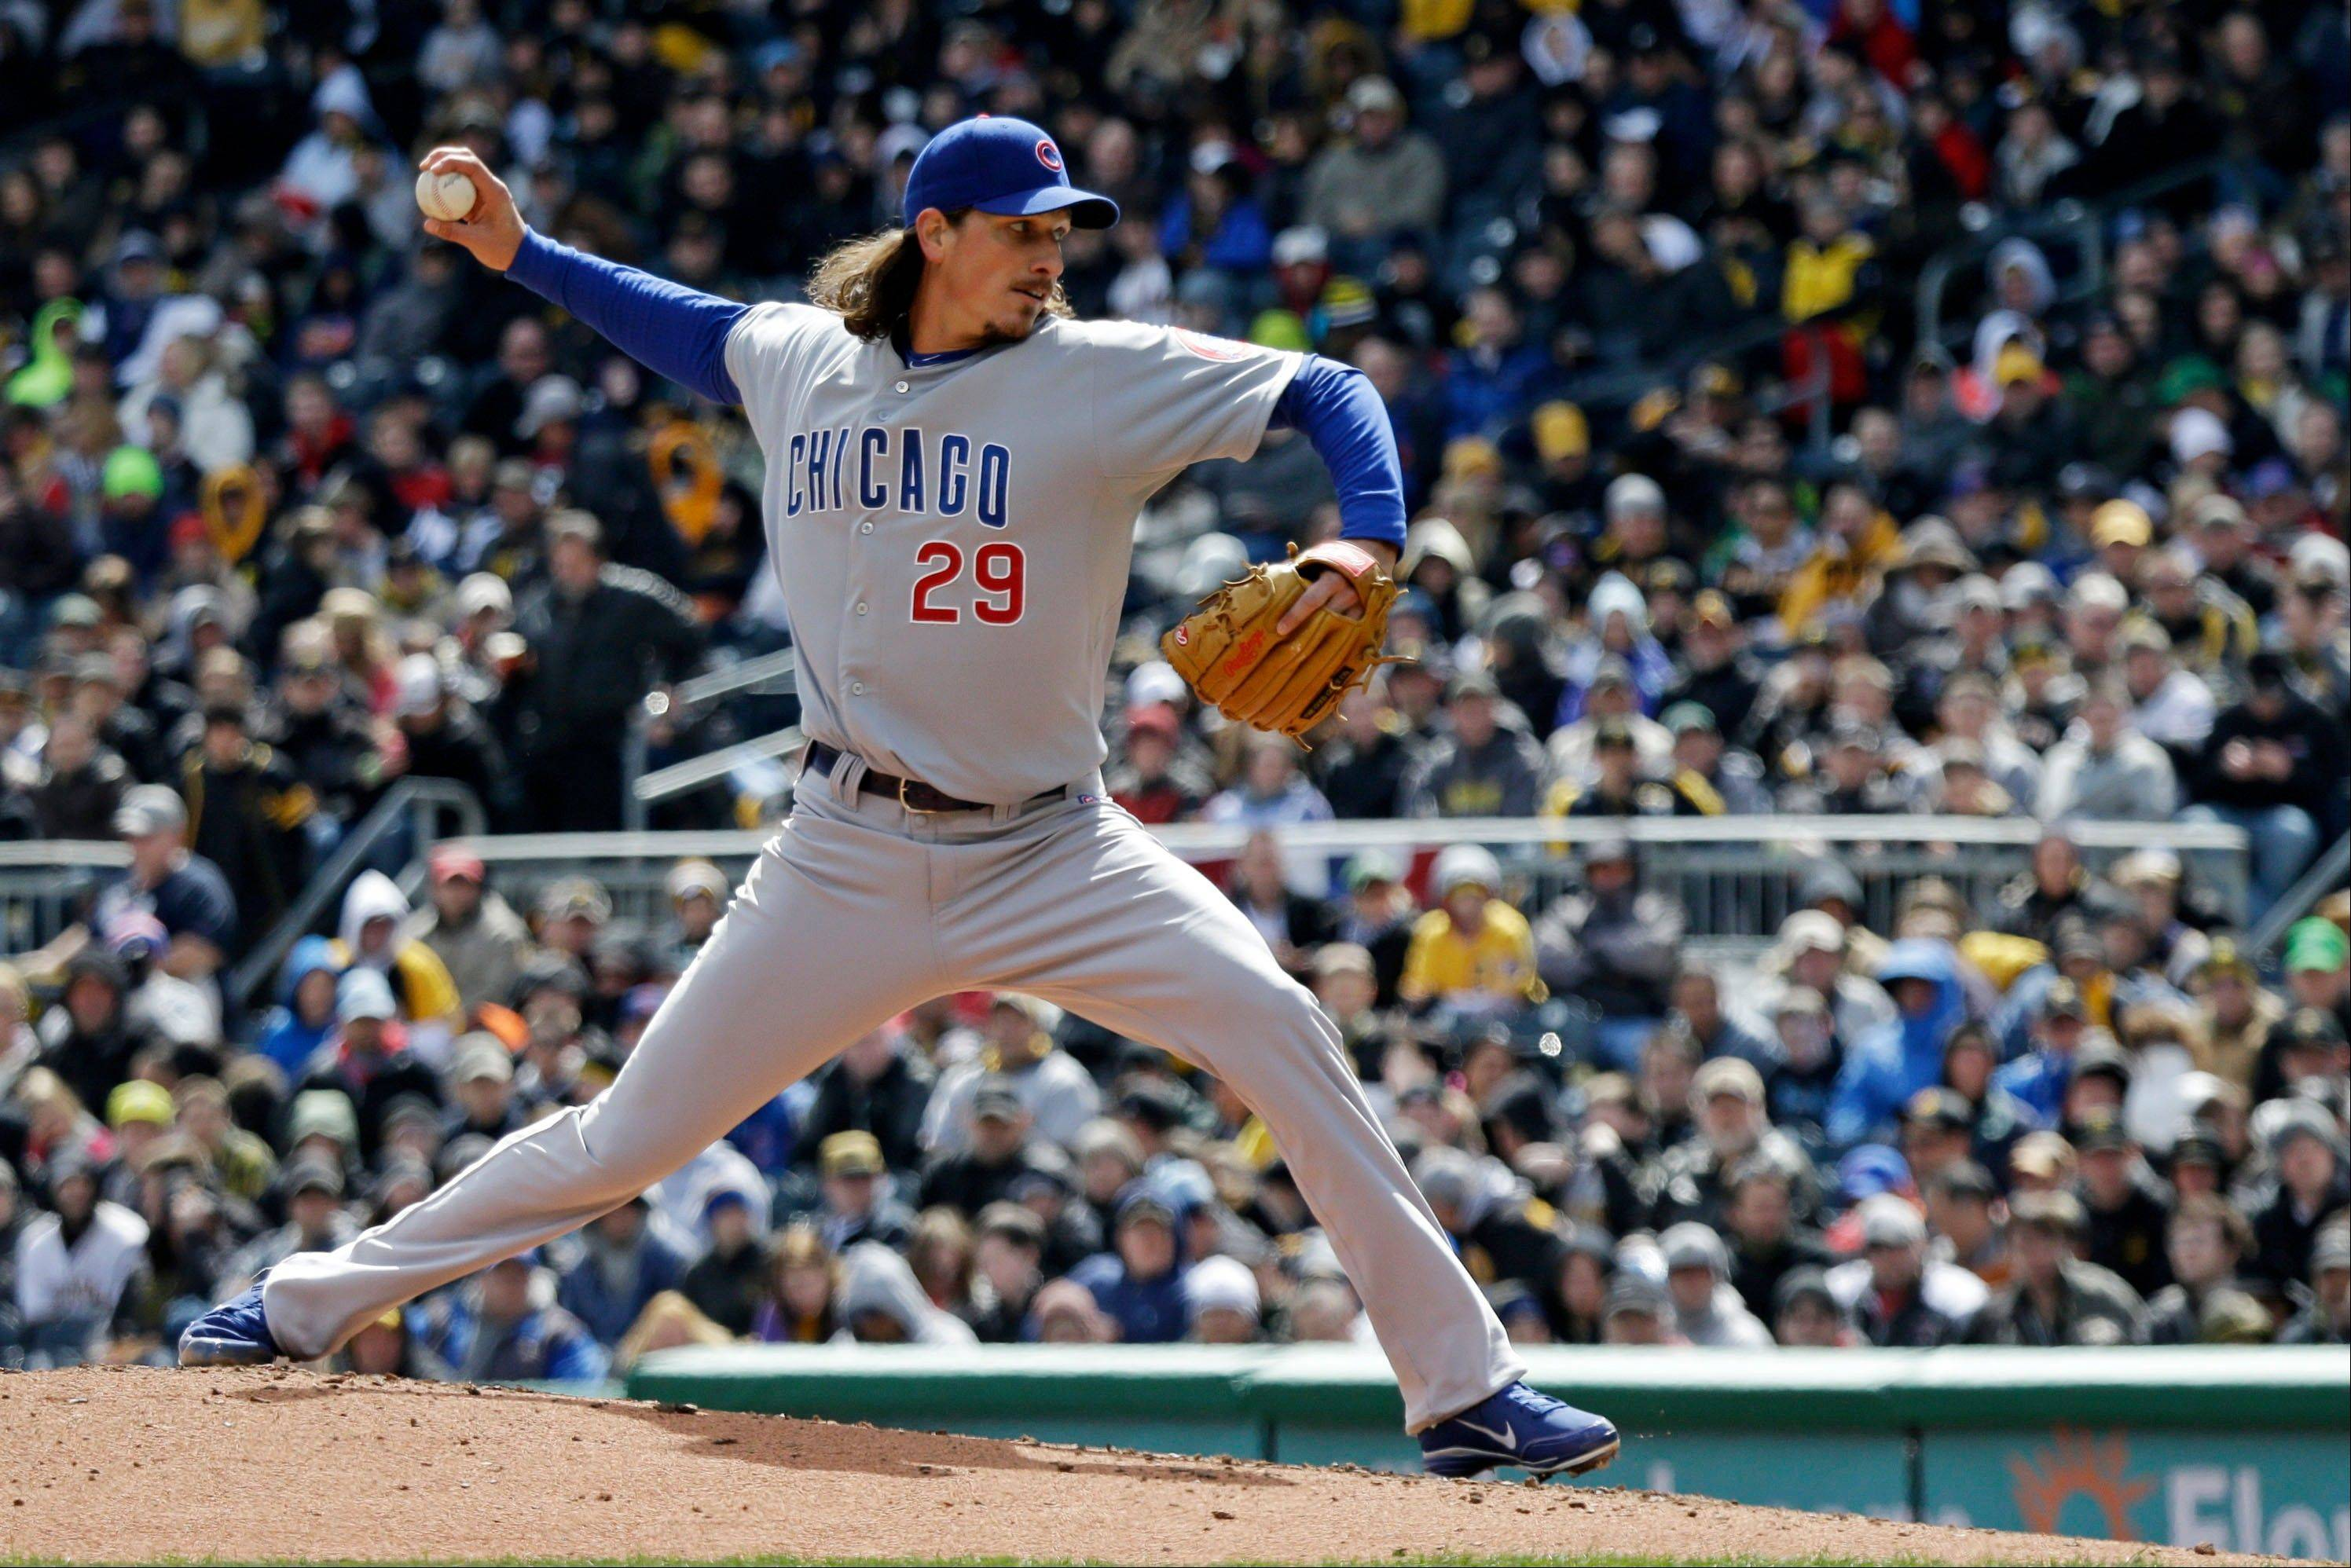 Chicago Cubs starting pitcher Jeff Samardzija delivers during the second inning.